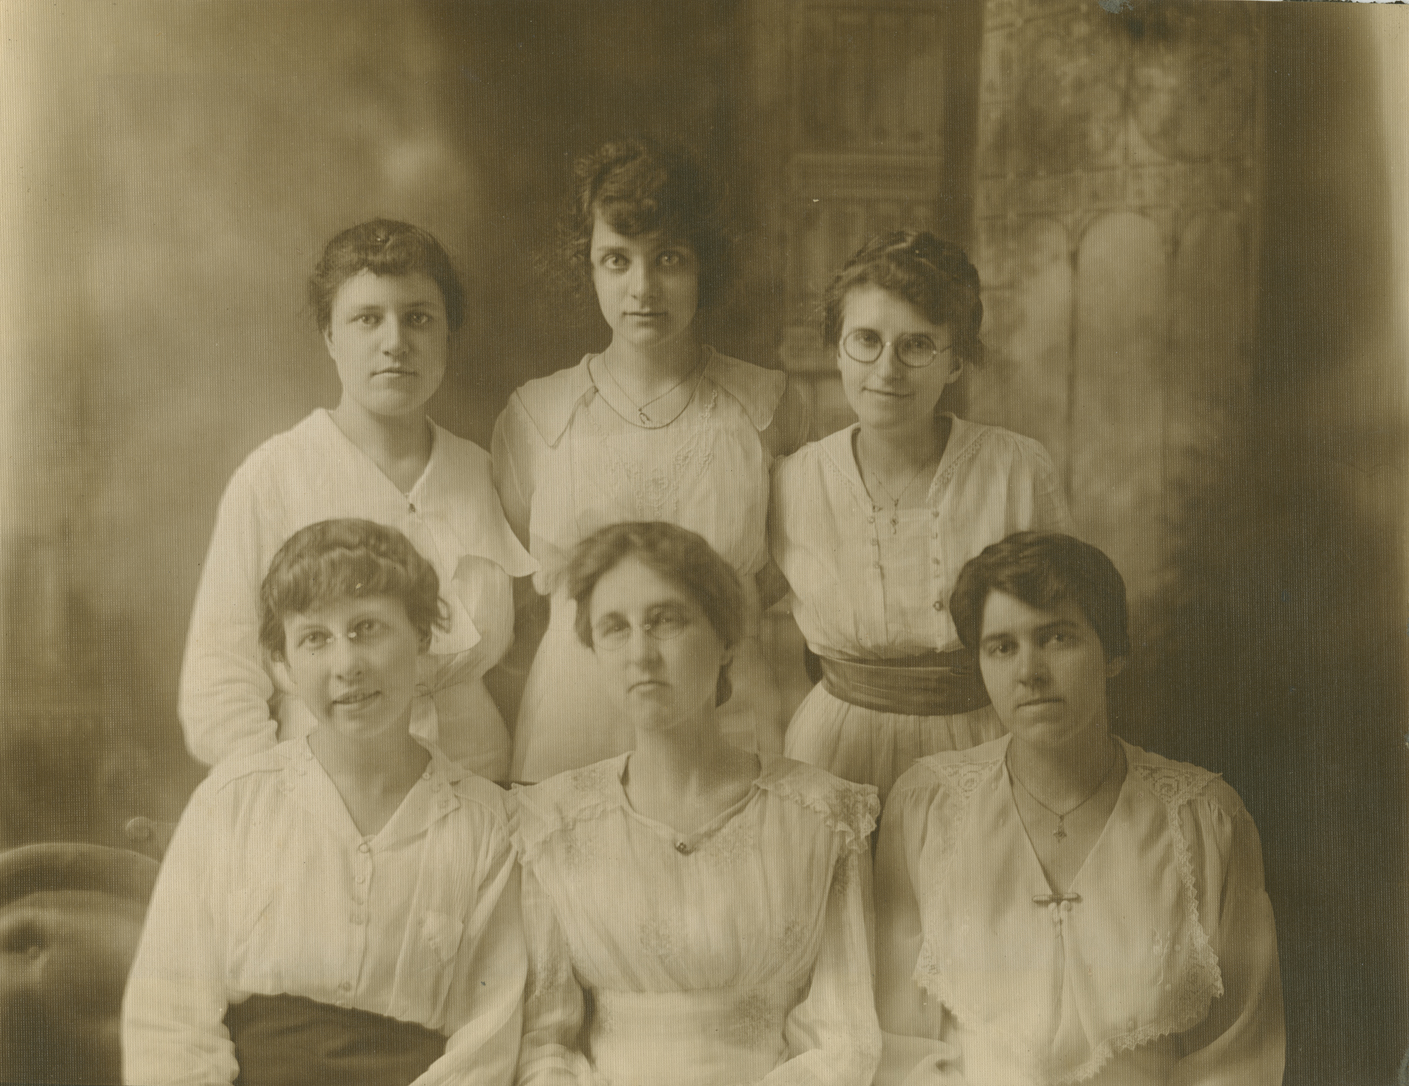 A photo of the matrons. Irene Butts, later Irene Mullins, is back right with round glasses.